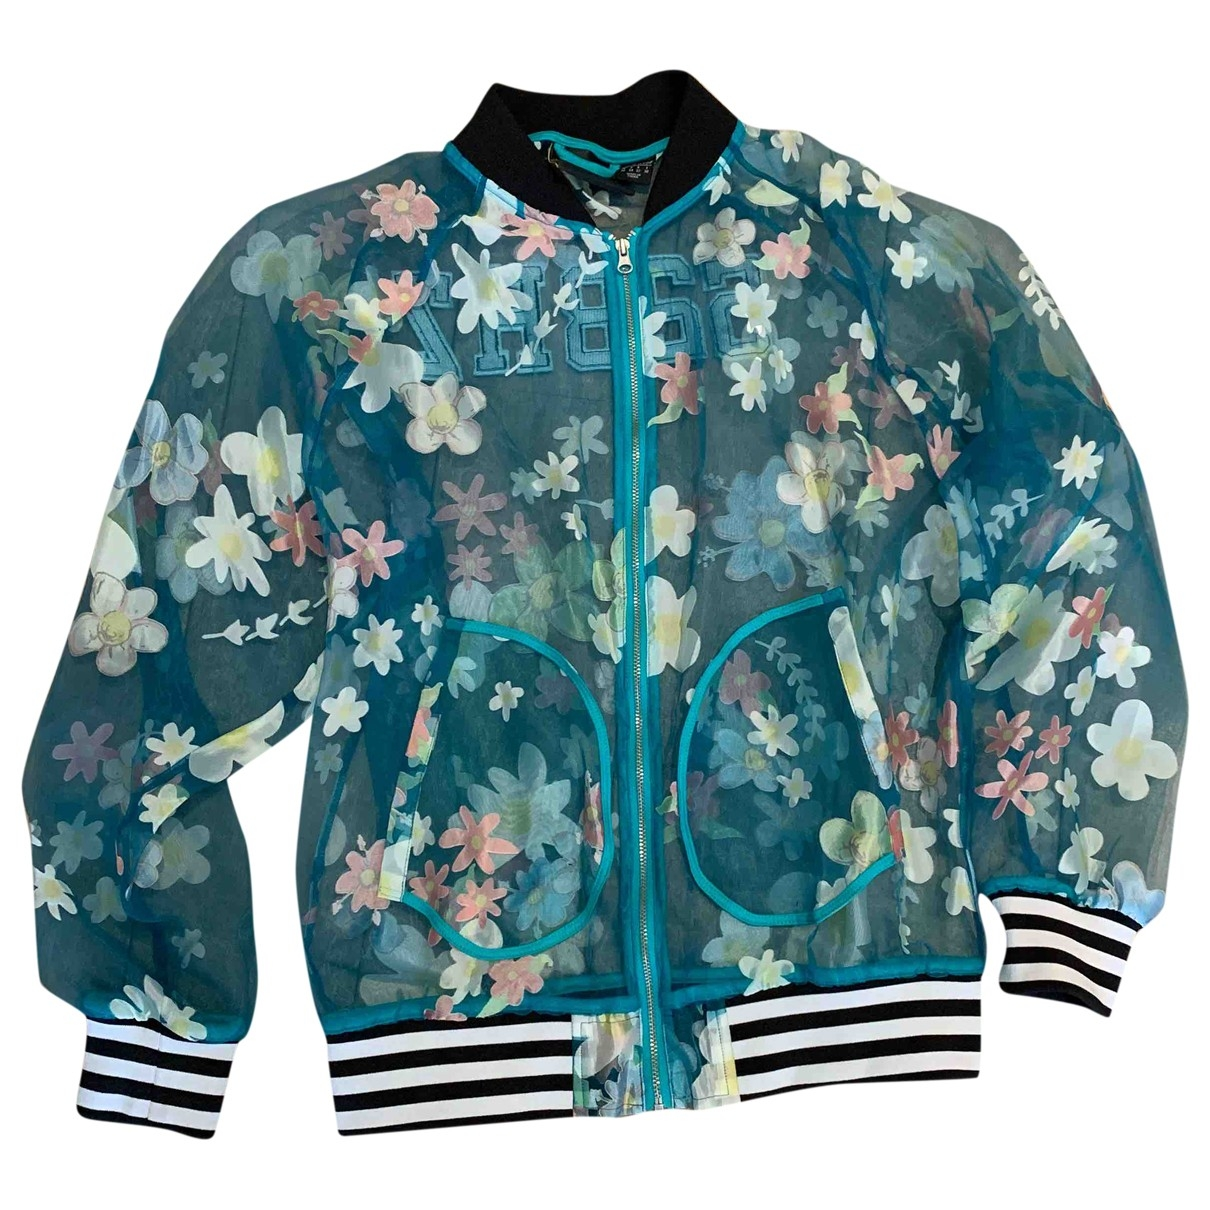 Adidas X Pharrell Williams \N Multicolour Cotton jacket for Women 34 FR